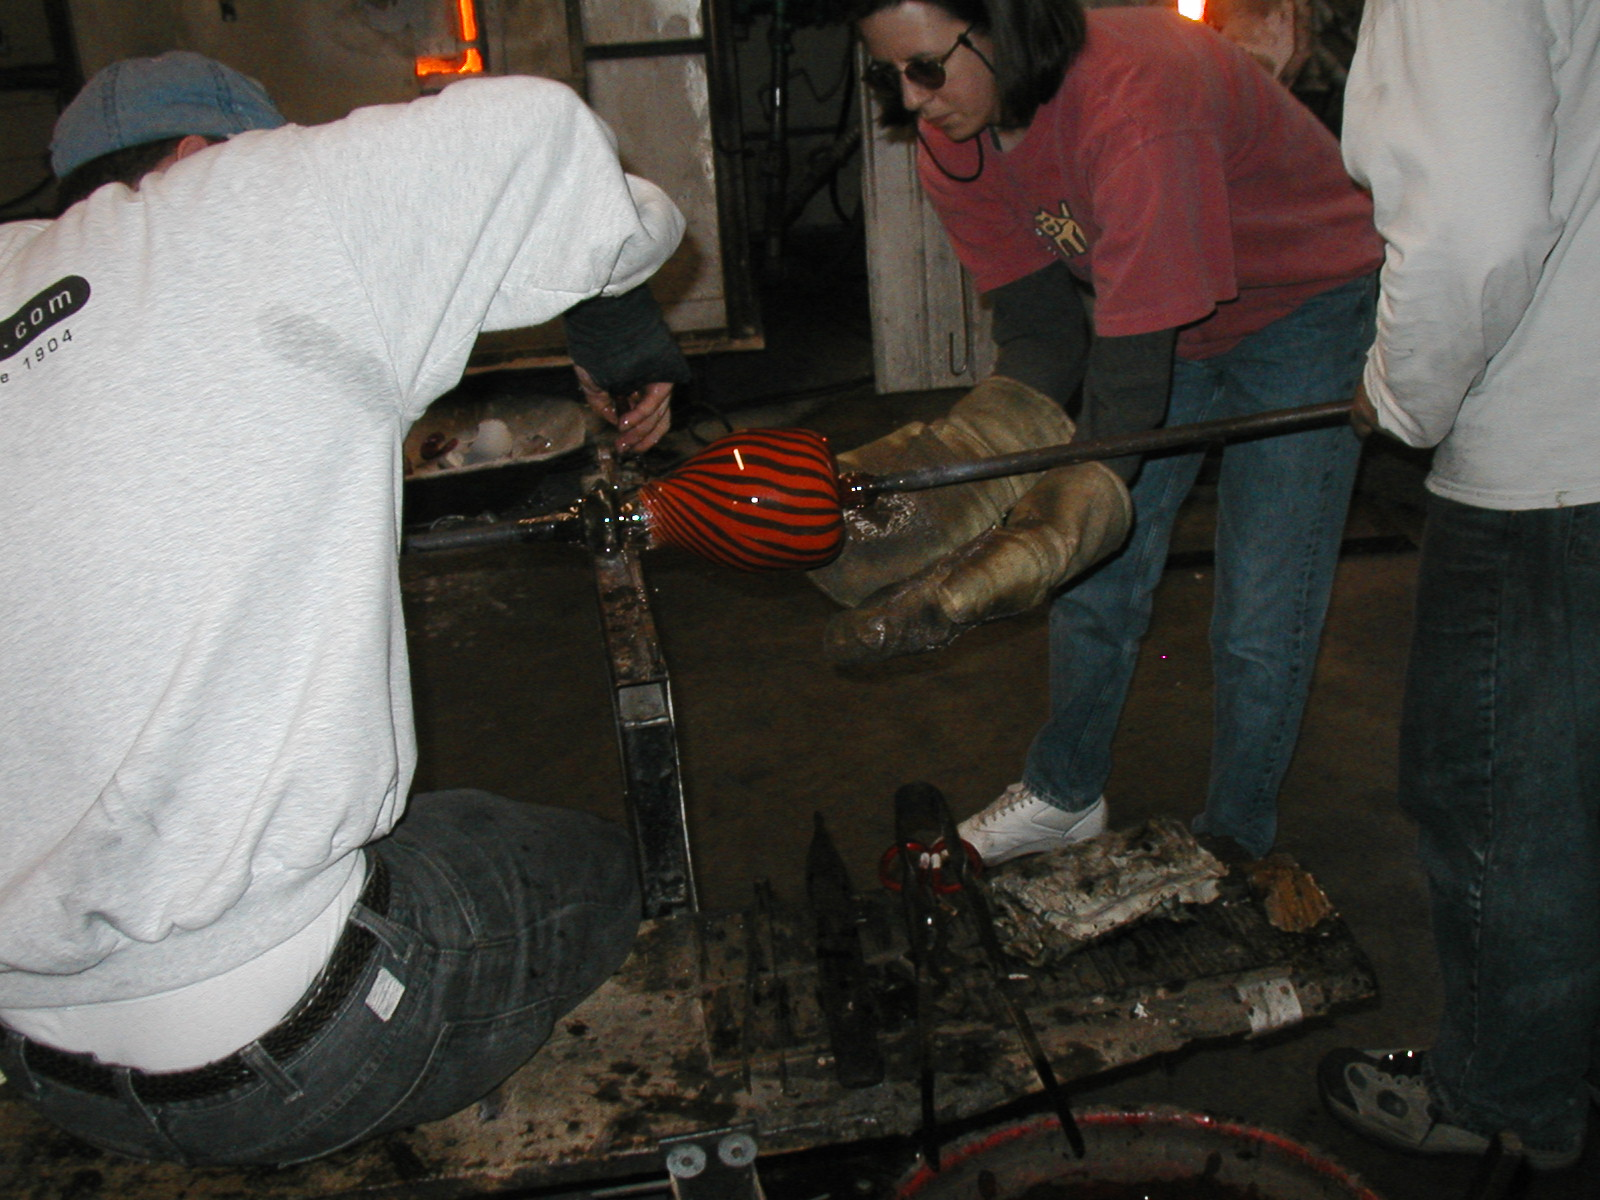 Glassblower.Info - Joel Bless Glasslight Glassblowing class January 18 2004 #111